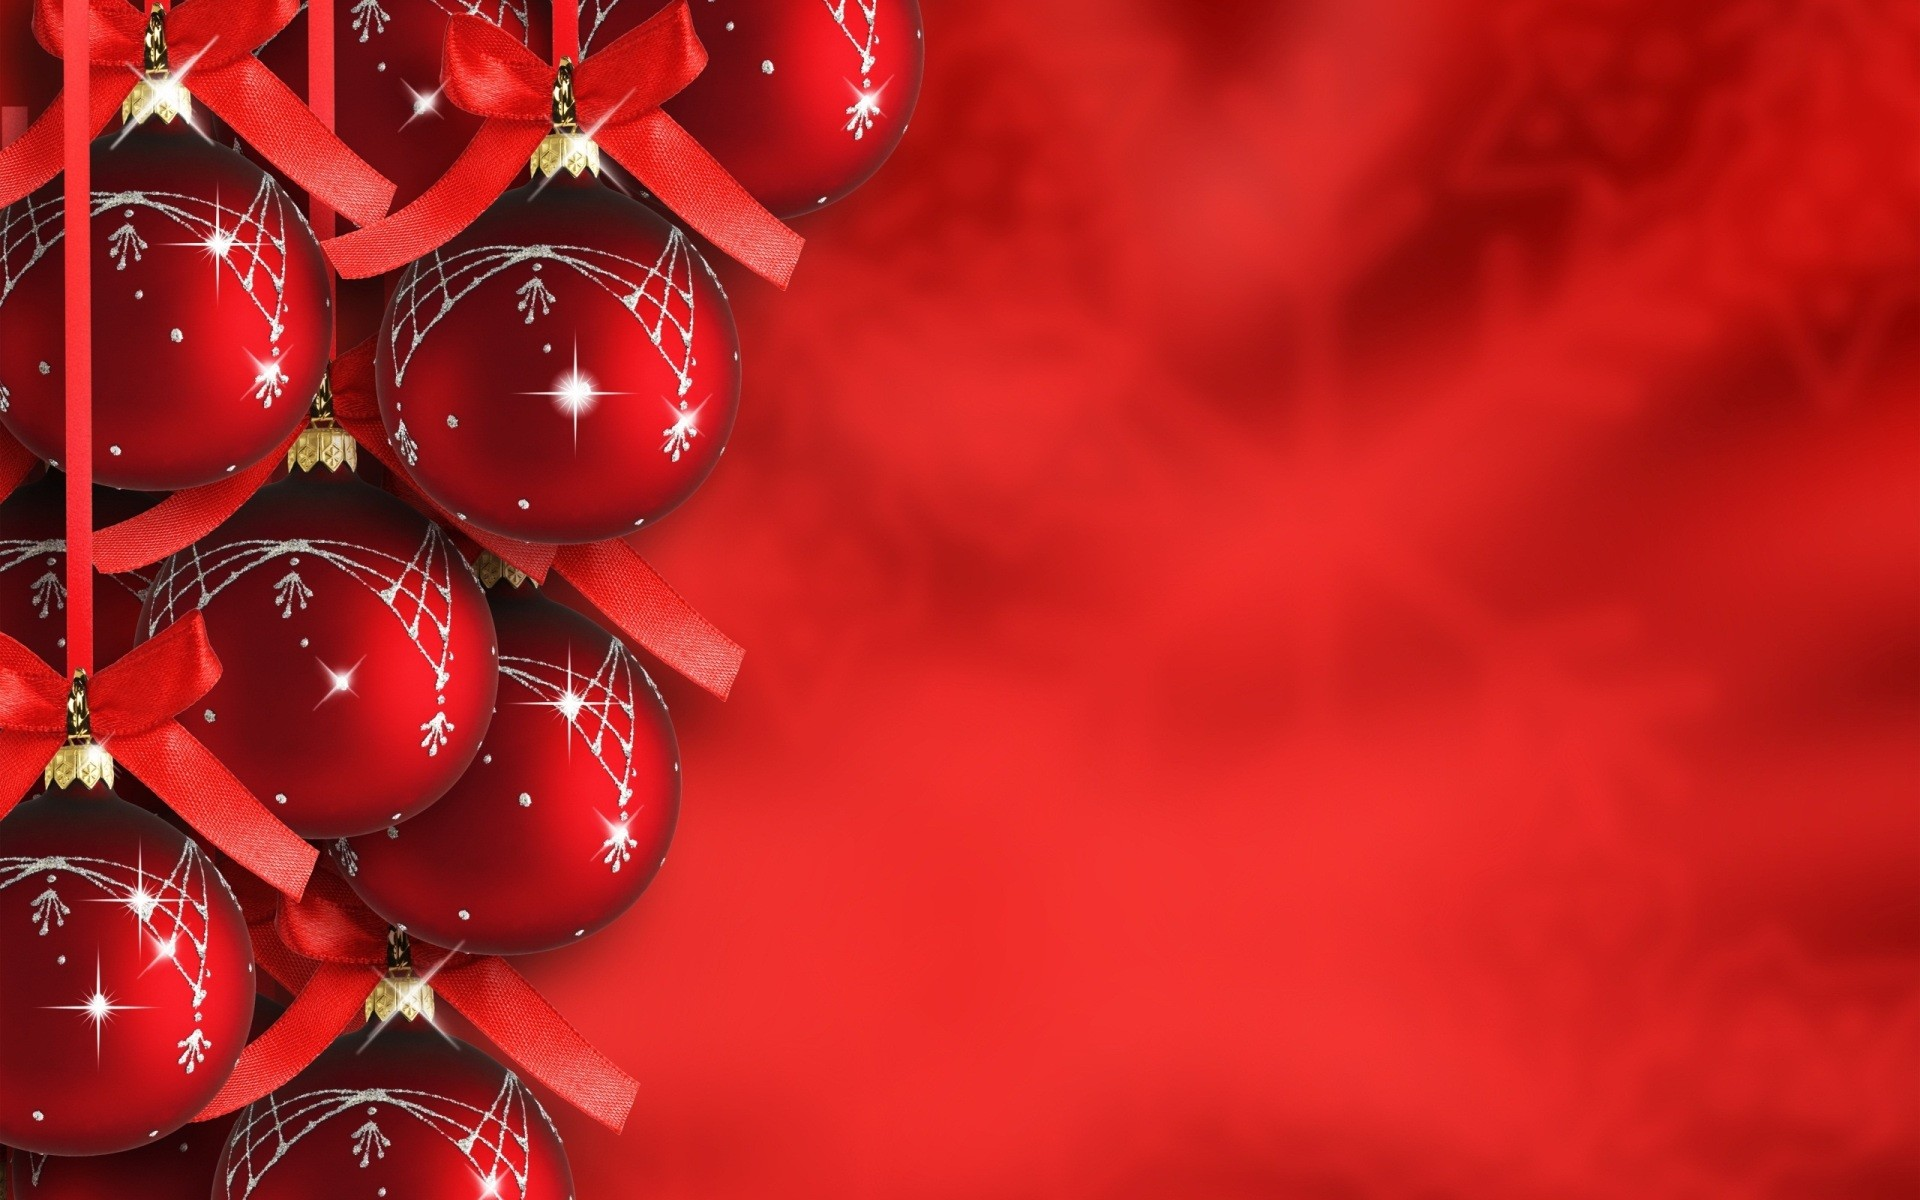 Christmas Background 2017 Cool Backgrounds 2017 6843wallpaper.gif